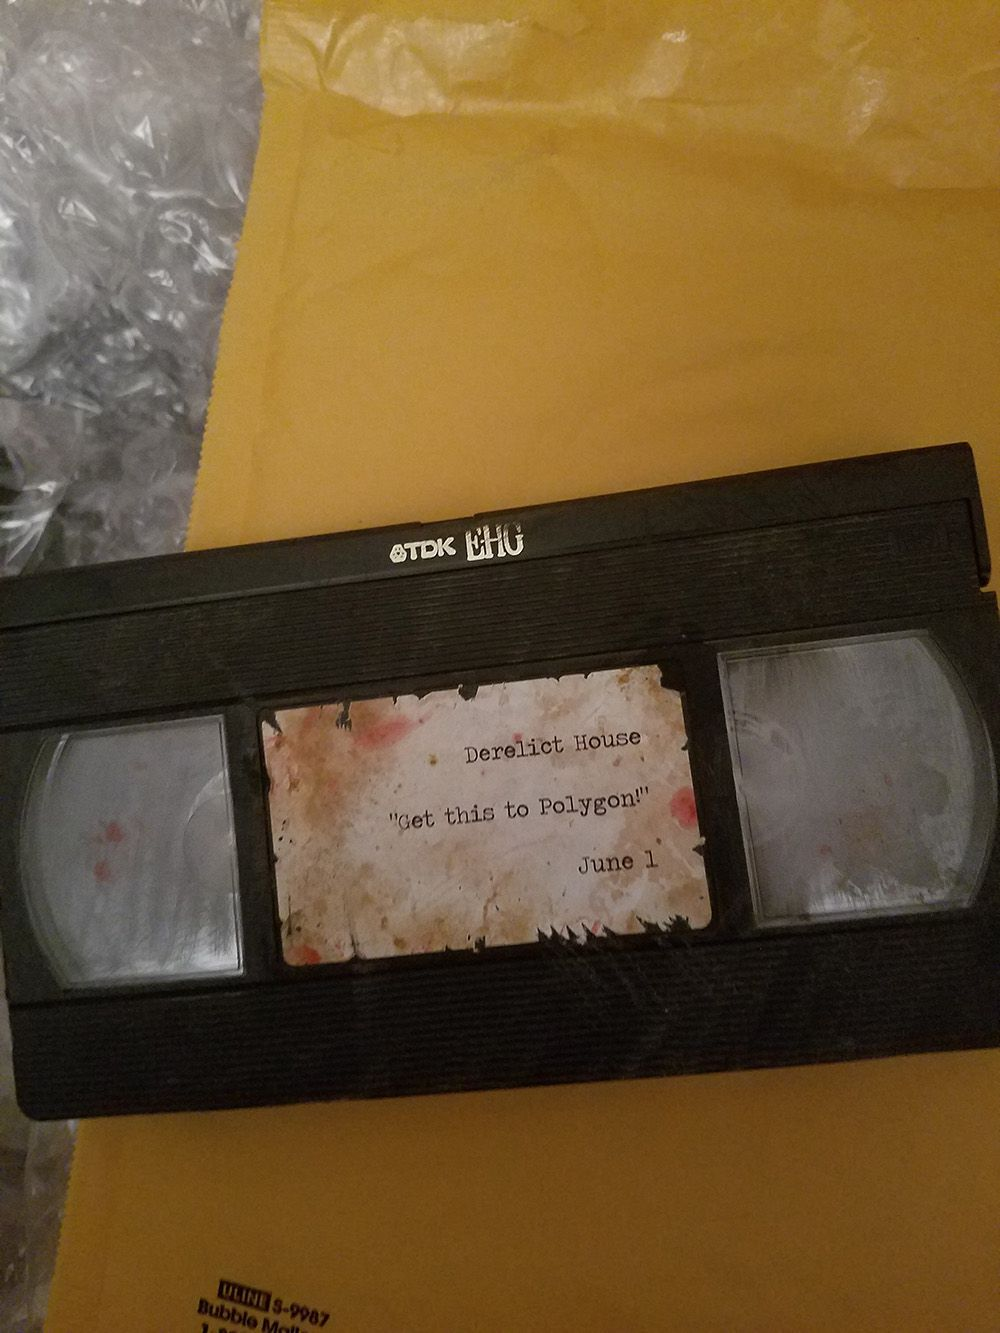 """This image shows a beaten up and bloody videocassette. Written on the front of the cassette are the lines: """"Derelict House, Get this to Polygon! June 1."""" Below the cassette are a padded envelope and box which have been opened."""